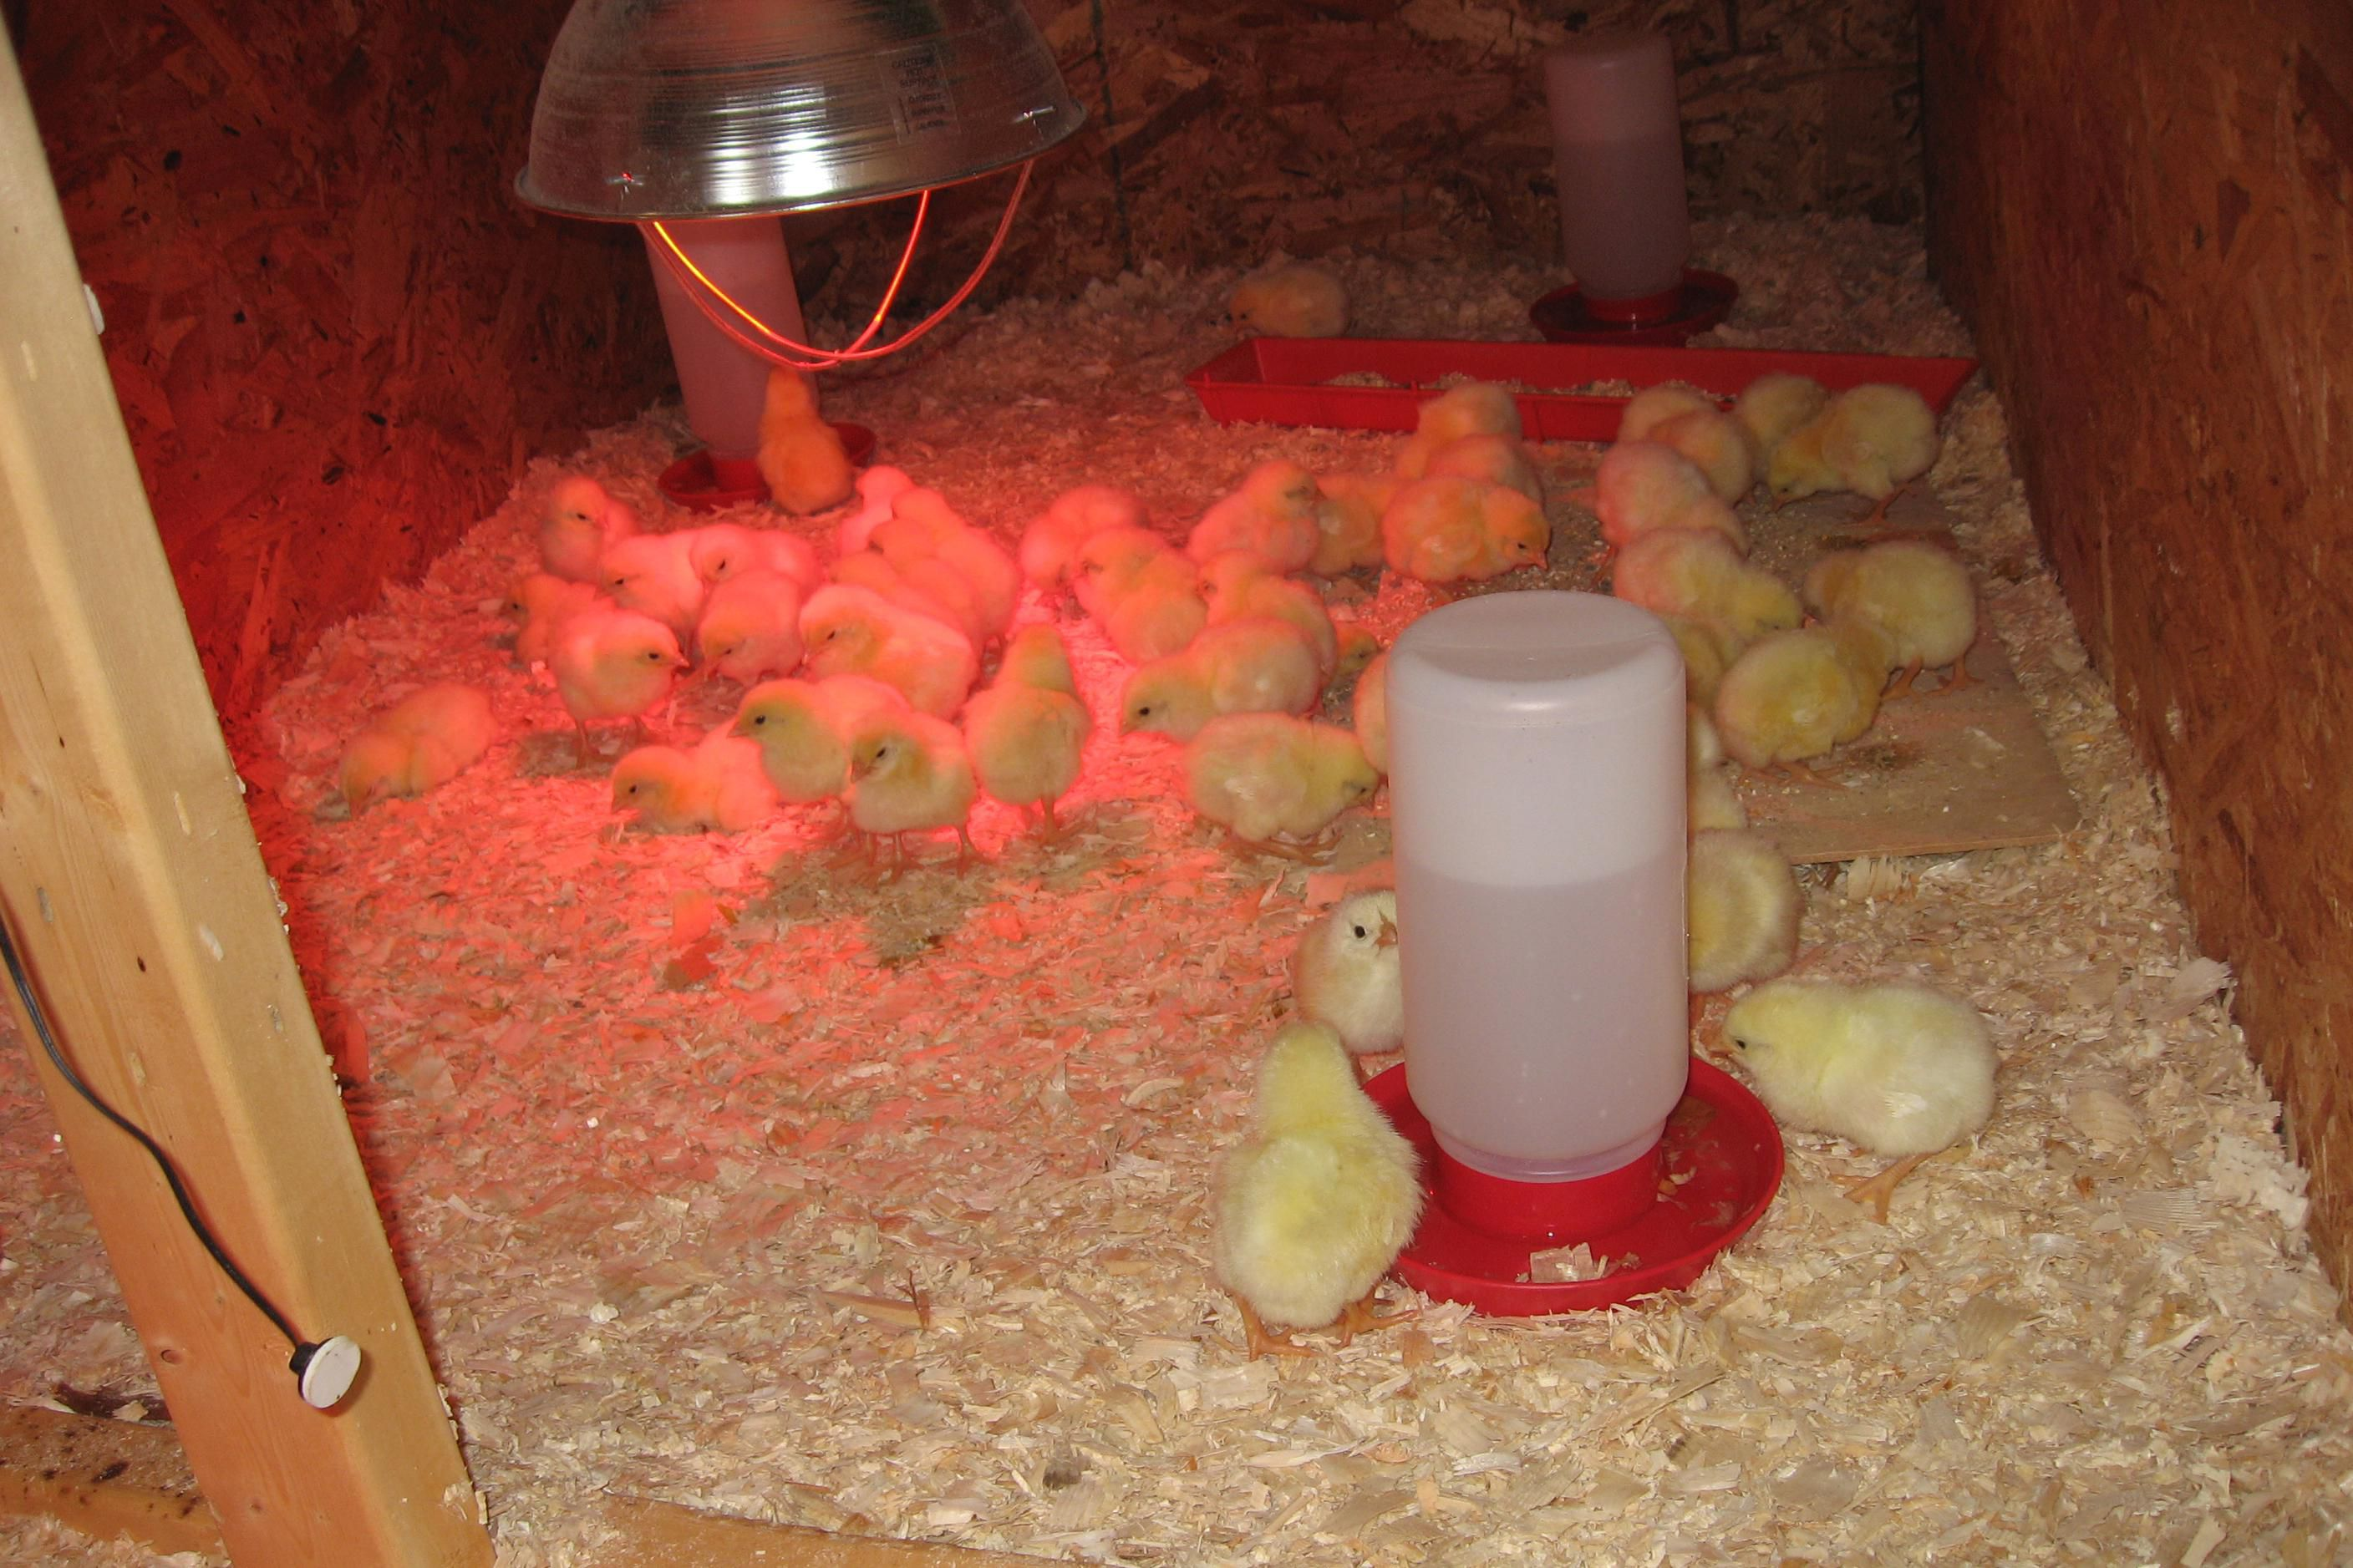 Cheap Auto Repair >> How to Build a Brooder for Baby Chicks